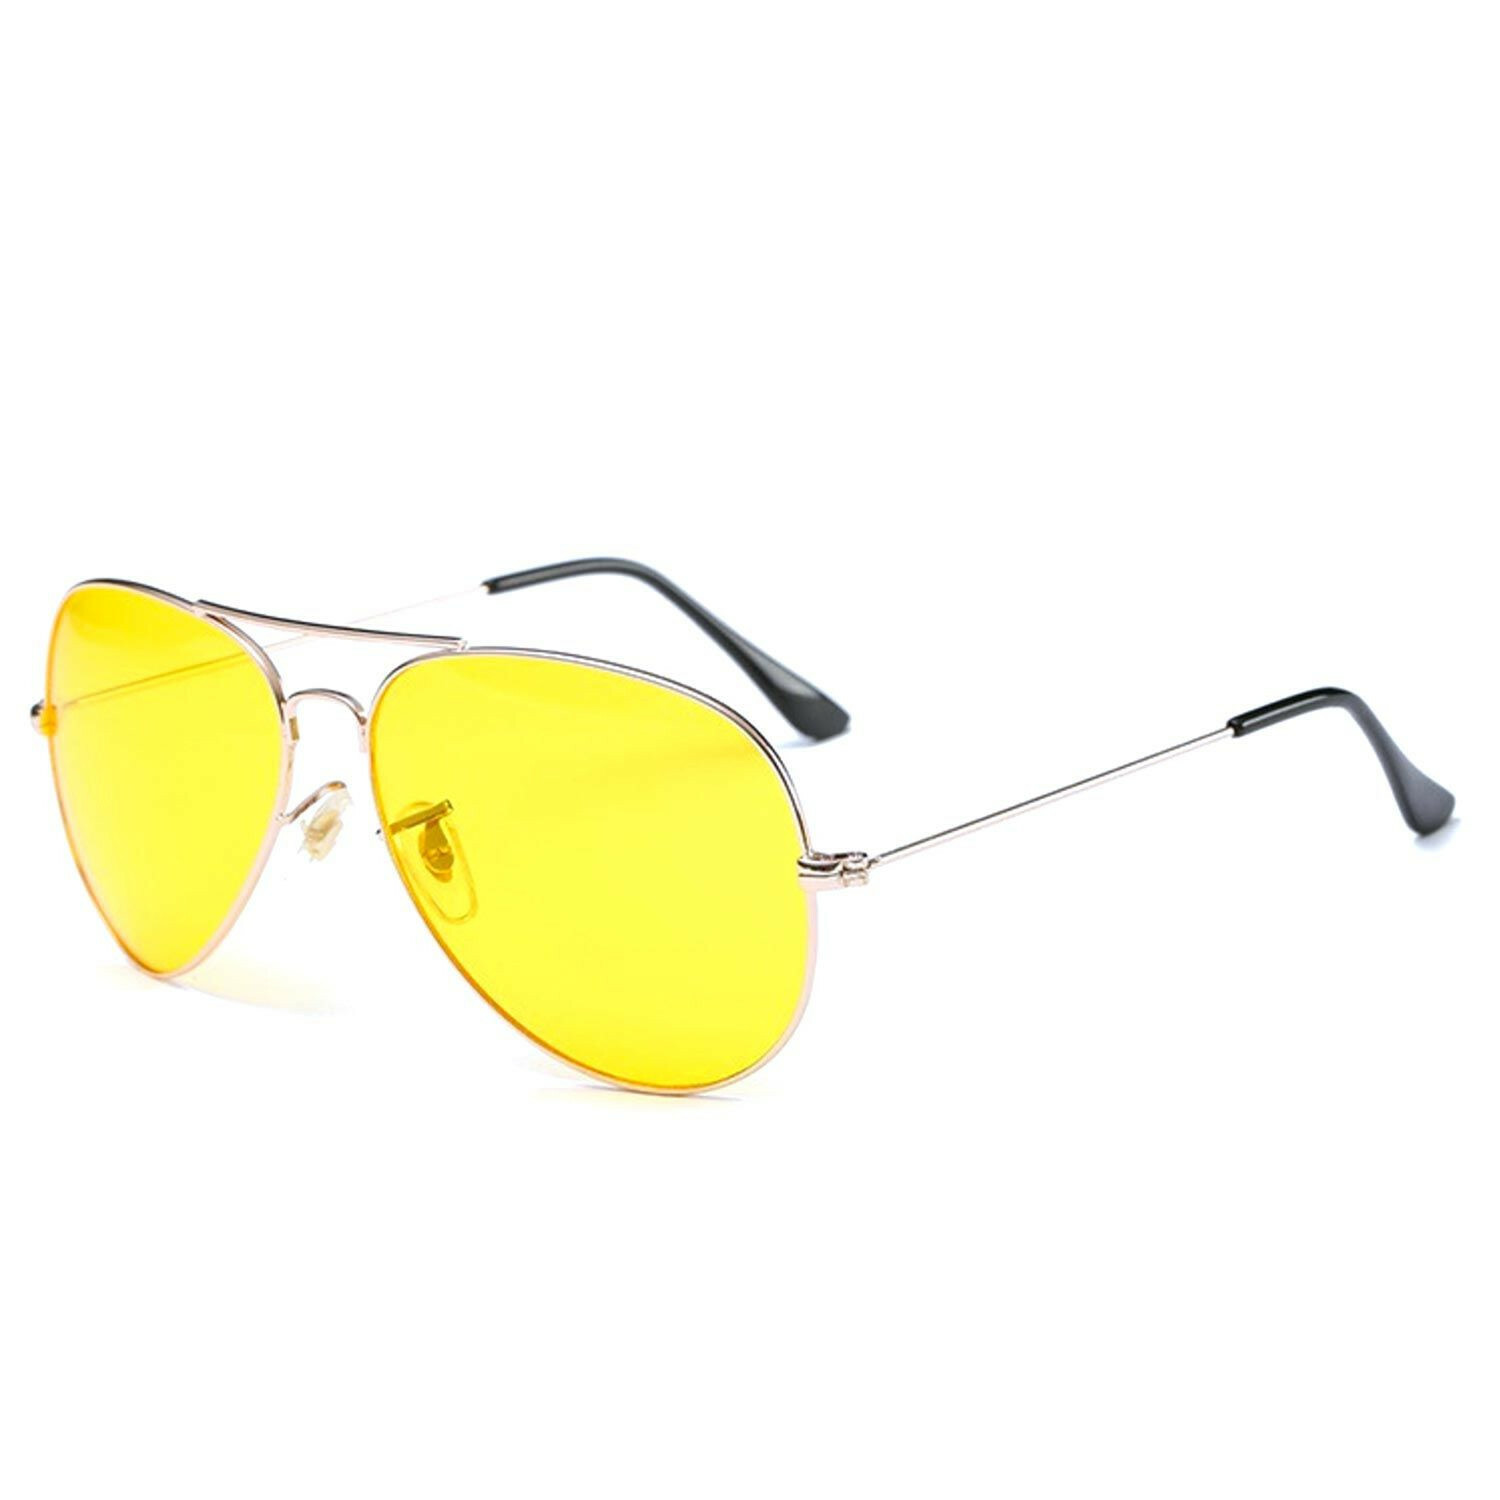 YELLOW RETRO SUNNIES GOLD